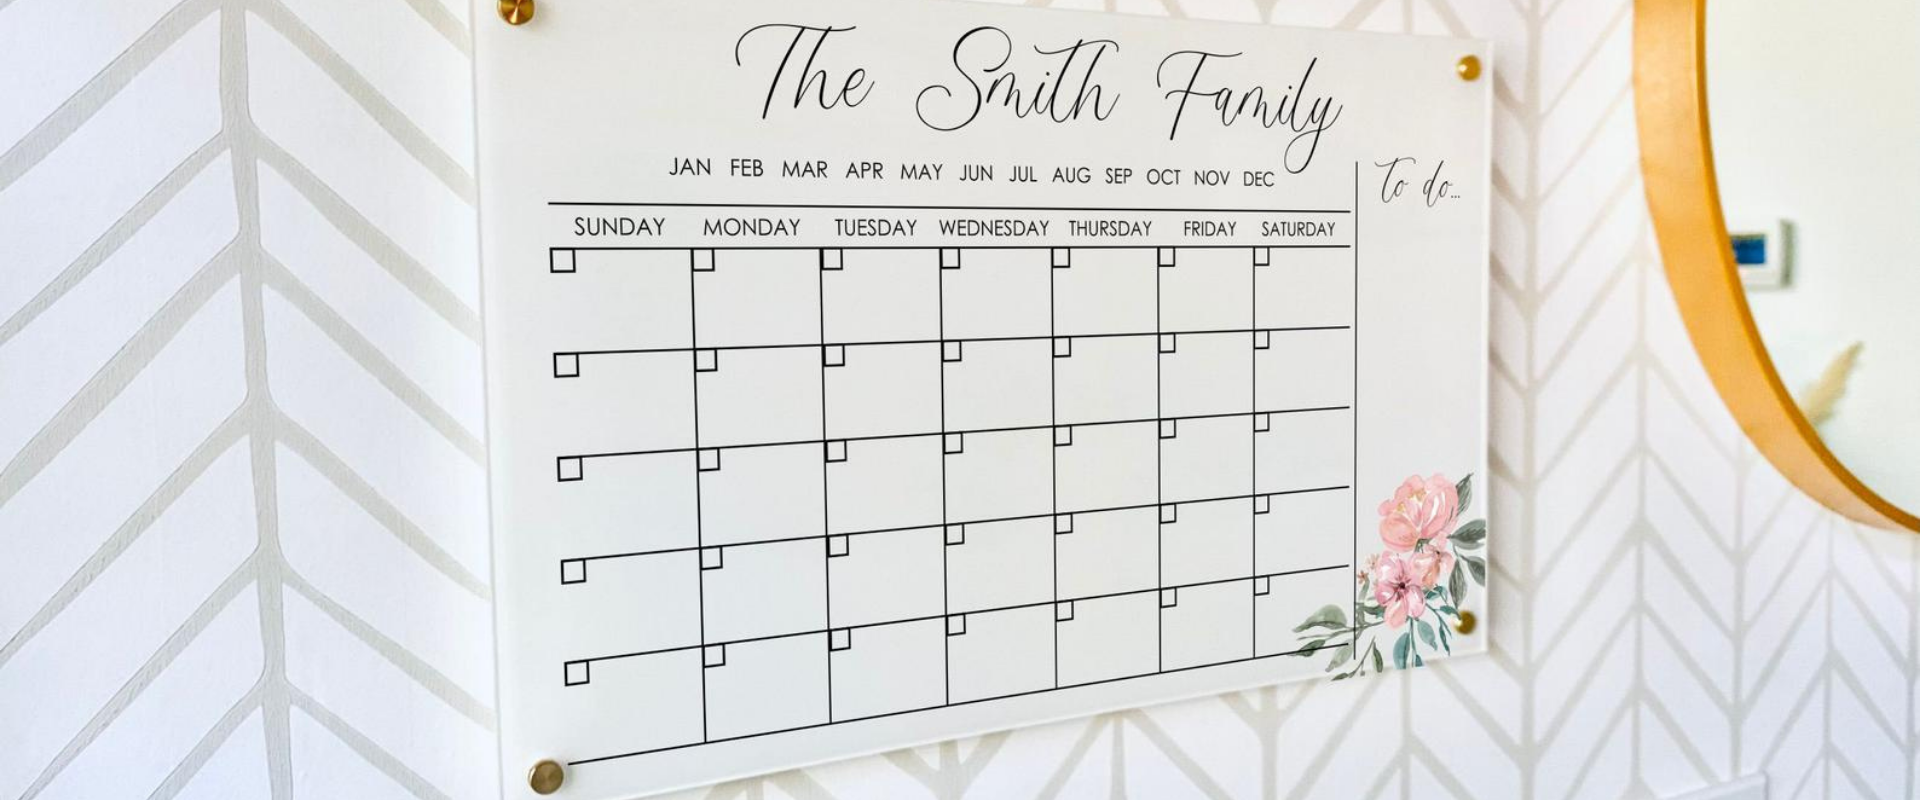 Personalizing our Acrylic Monthly Calendar Made Managing Our Family Easy